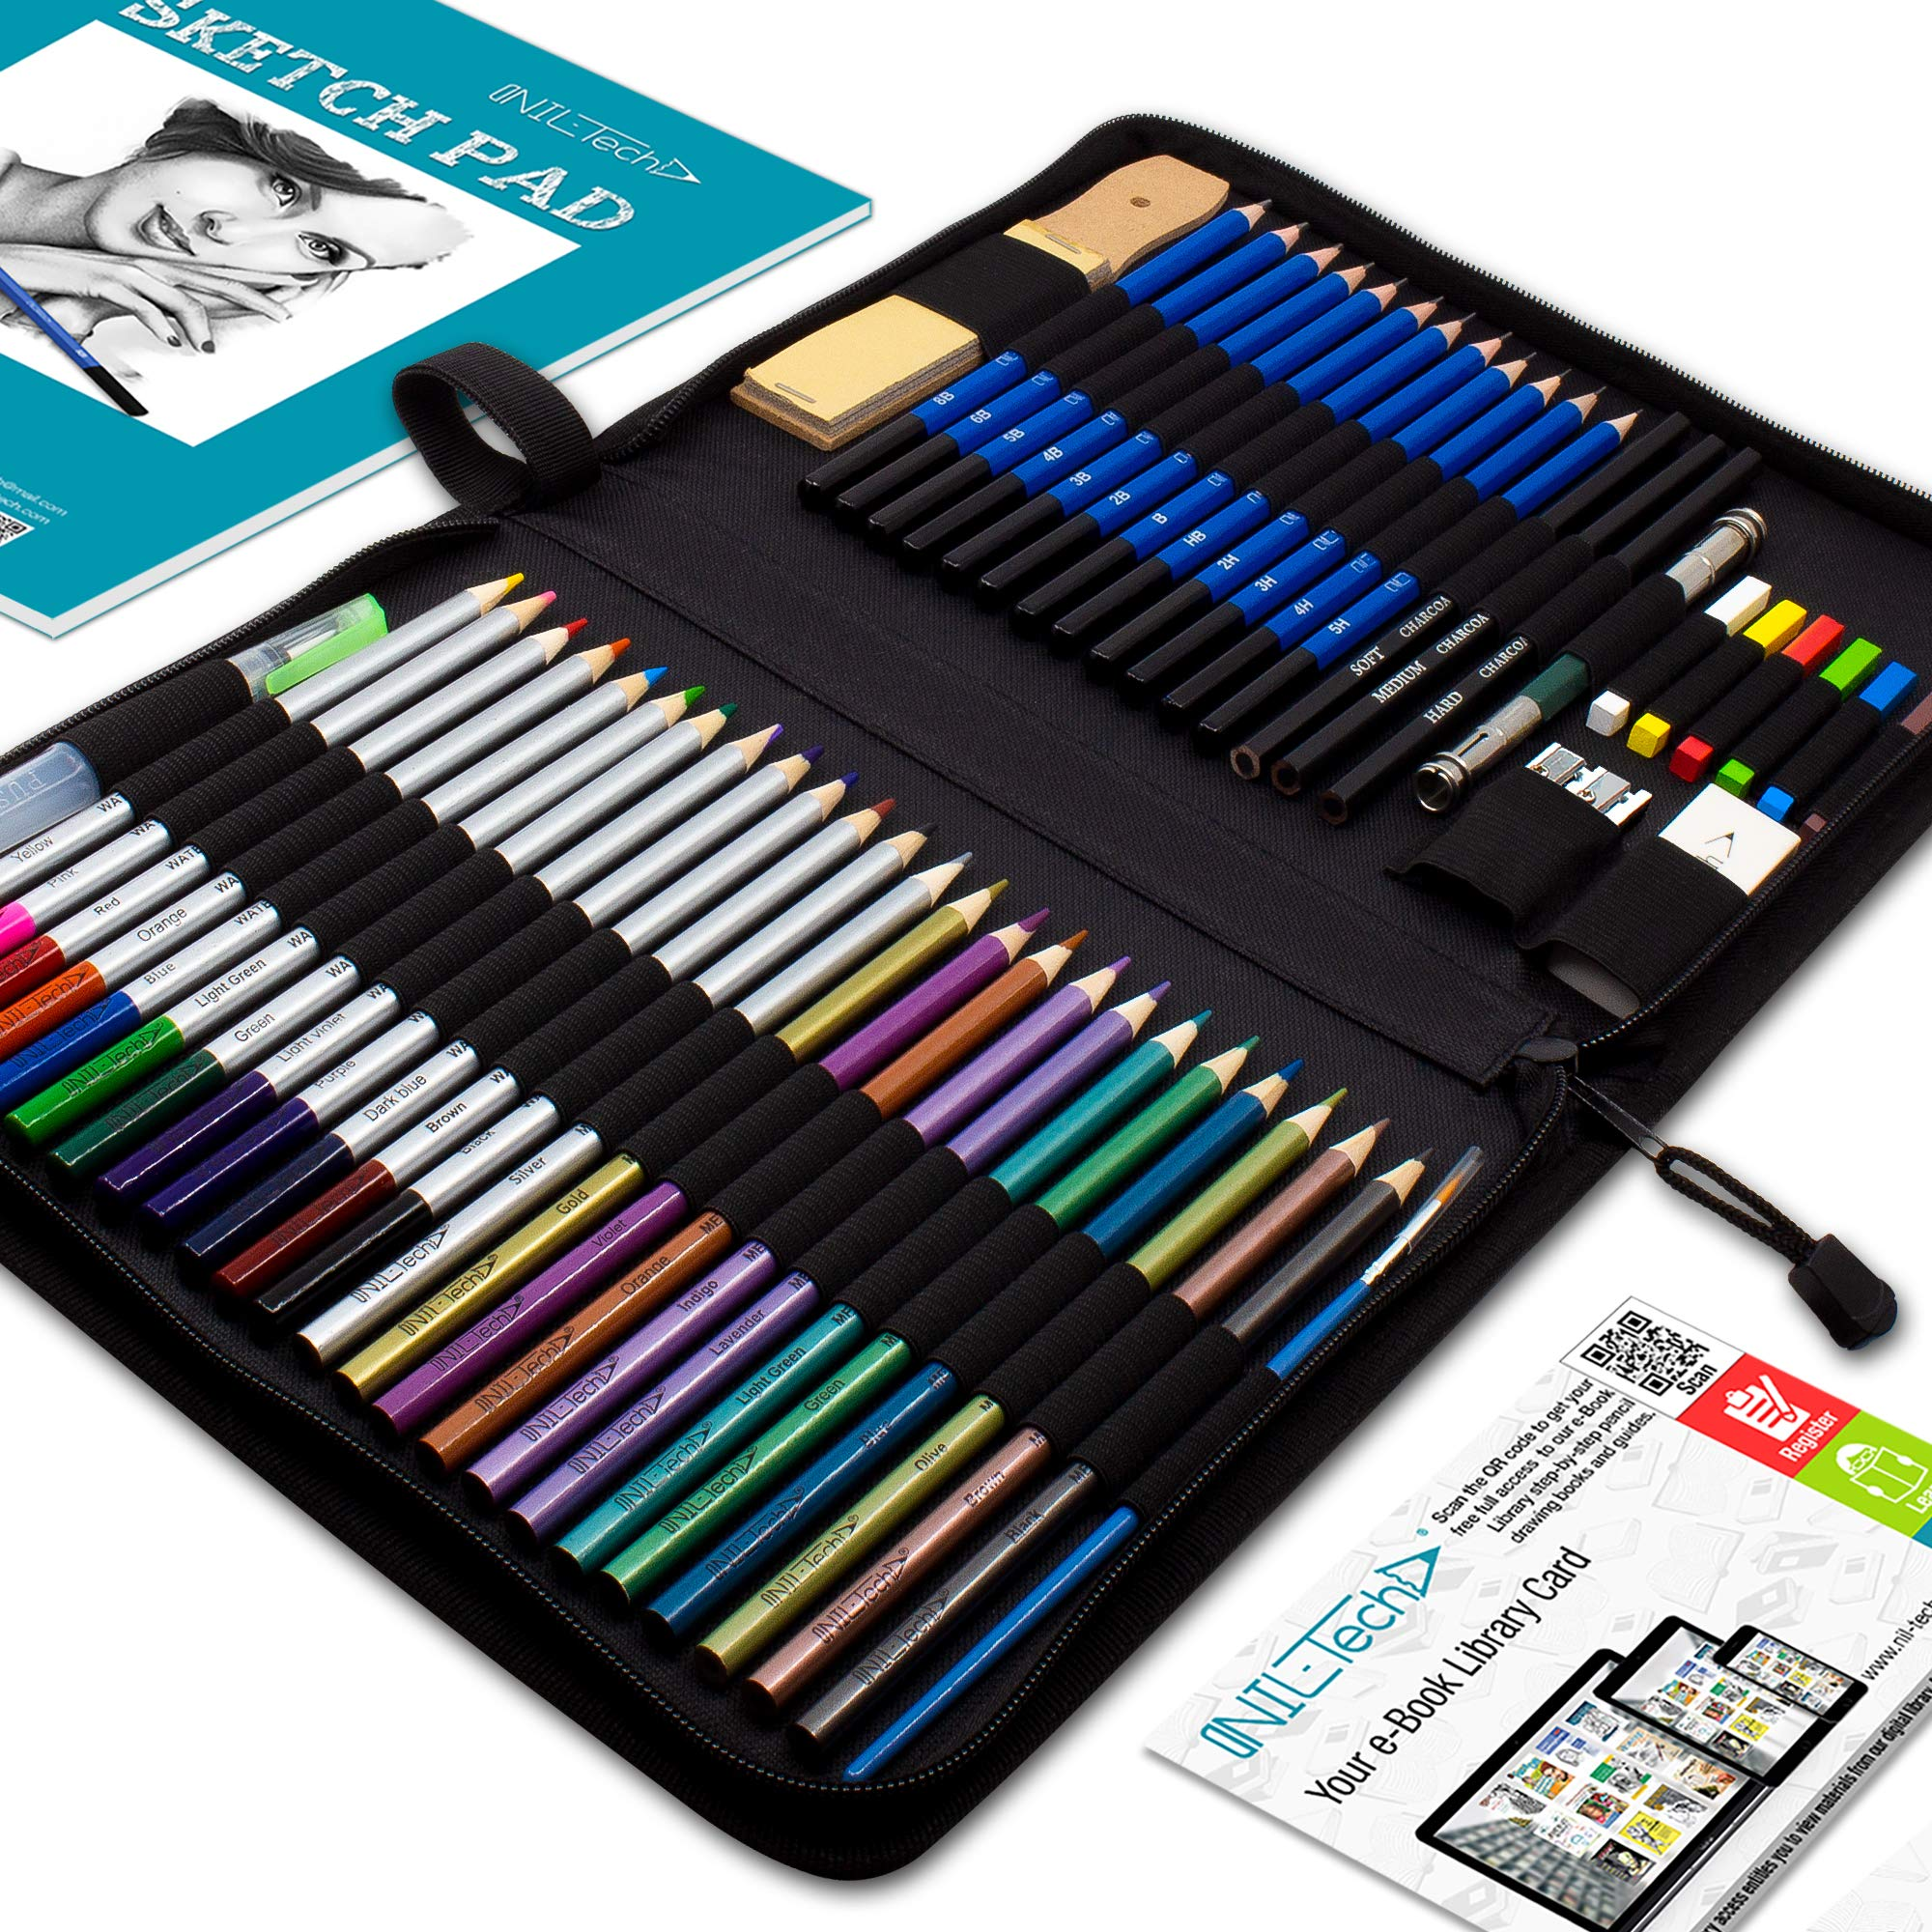 Drawing Watercolor Pencils Art Supplies – 53 Coloring and Sketching Art Set – Each Art Supply Includes Bonus Sketch Book and Digital Library Drawing Tutorials - Pencil Pouch, Graphite Charcoal, Eraser